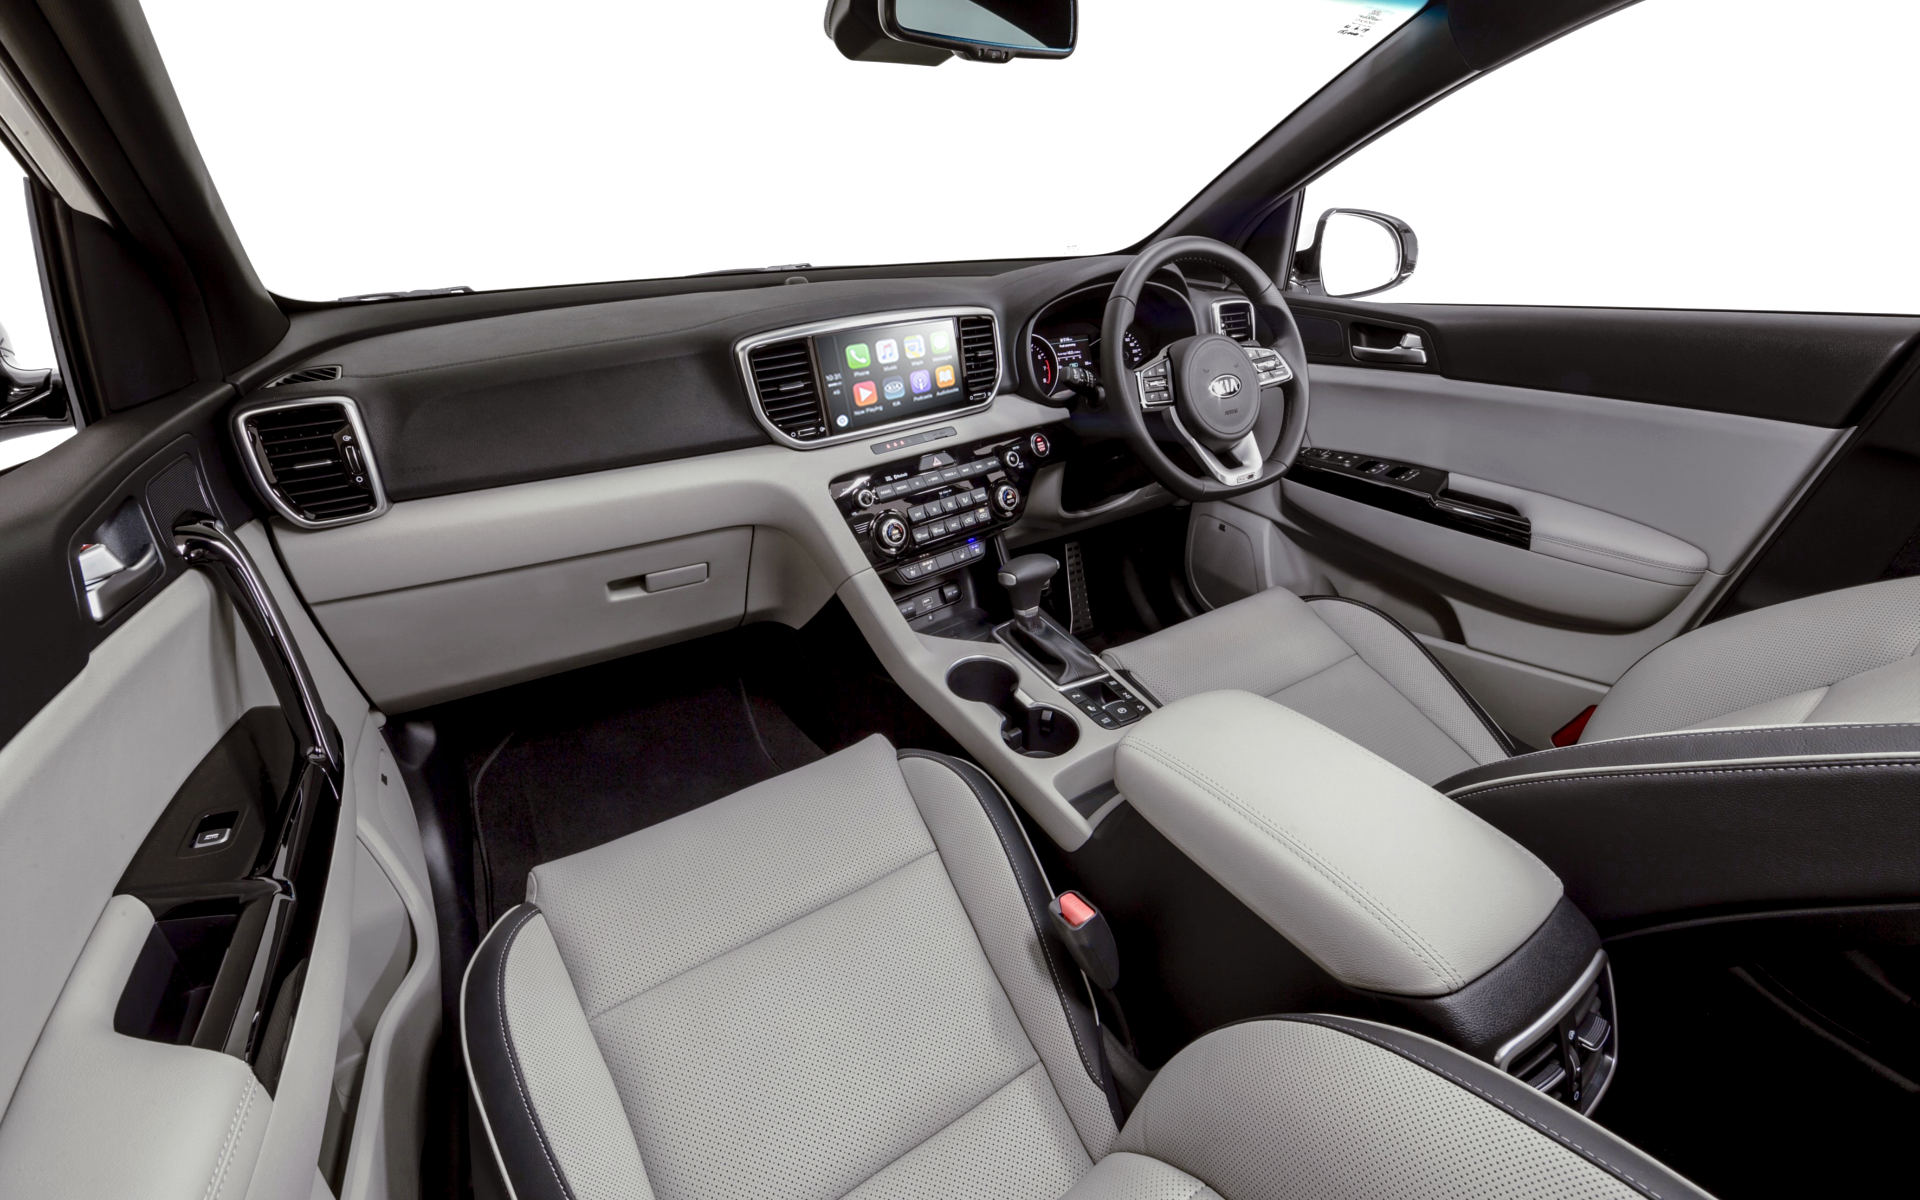 kia-sportage-interior-main-pc - Ferntree Gully Kia